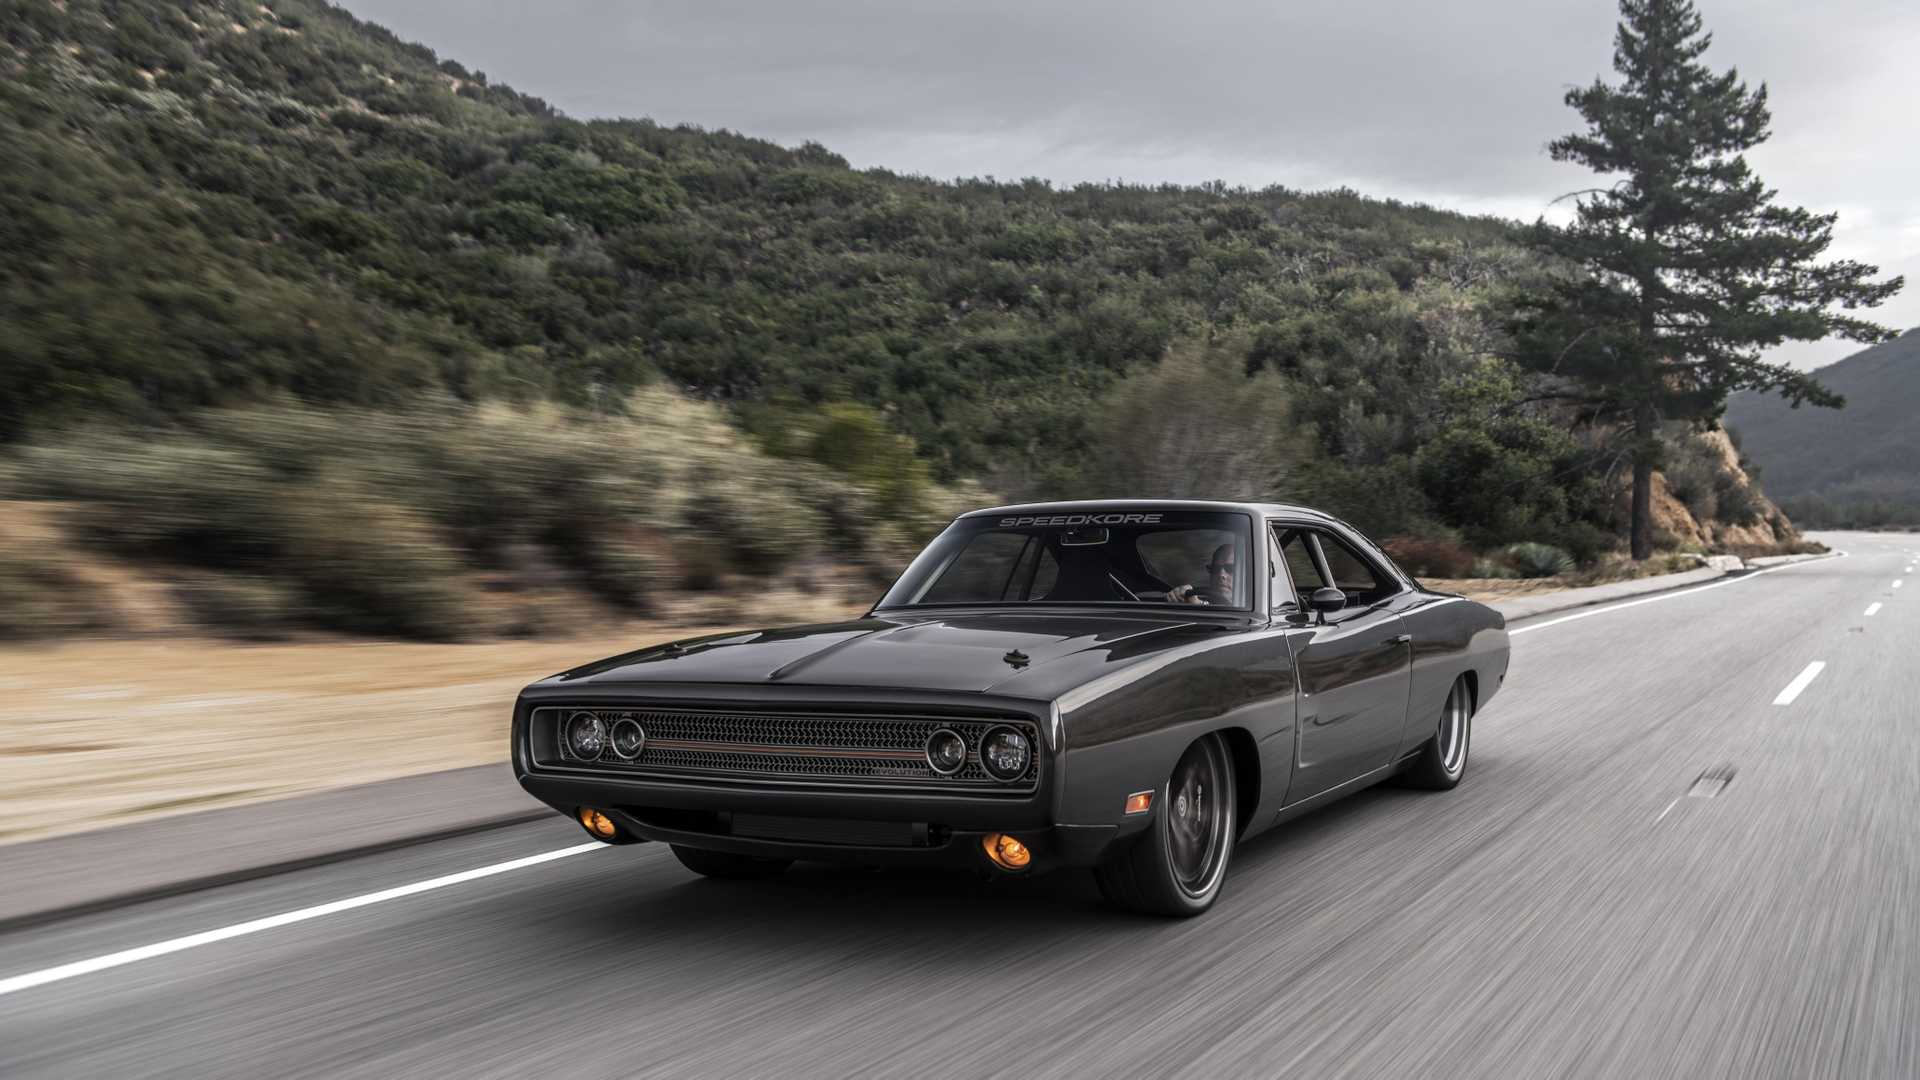 The Speedkore team took a fifty-year-old Dodge Charger and subtly turned it into a raging supercar slayer. The car may have the looks to show for it, but it harbors a seven-liter Hellephant engine underneath the retro disguise.